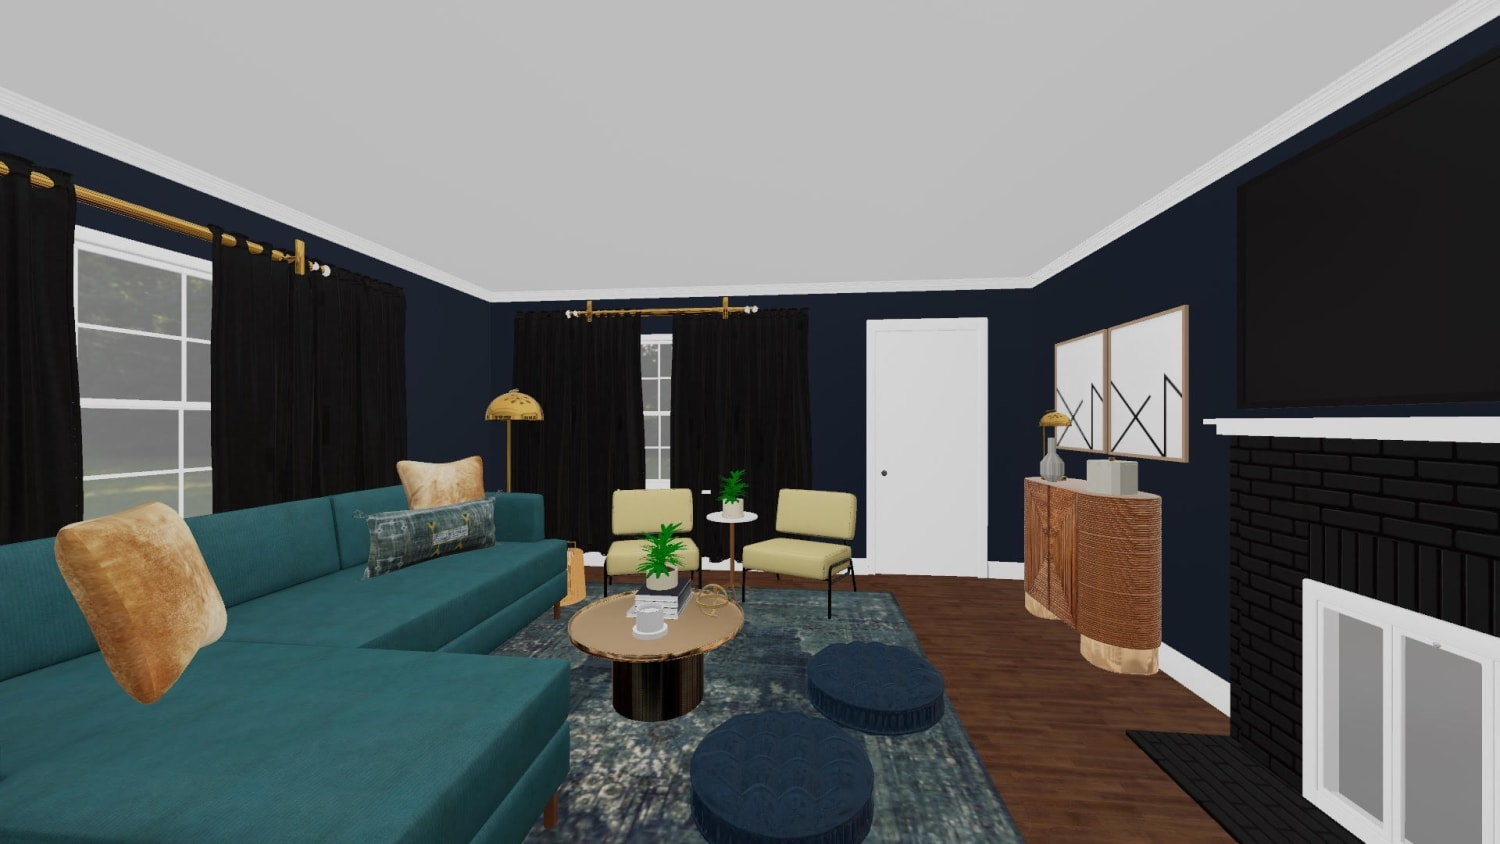 3D Design For Lynette New Living Room View